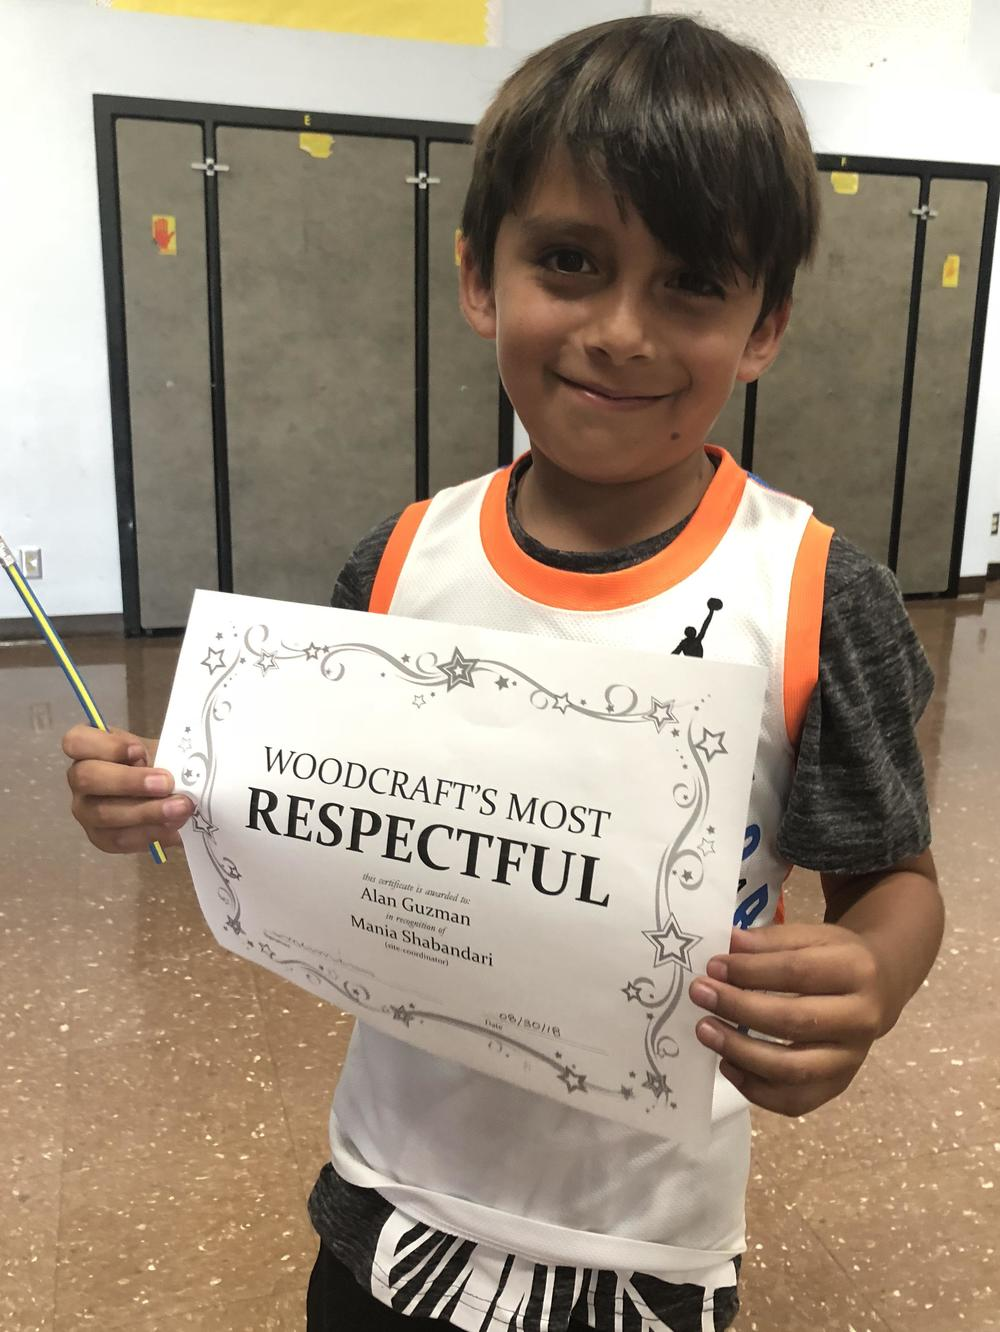 Every Friday Woodcraft Rangers comes together to do activities all together.  This Friday we recognized some of our AMAZING Rangers with awards!  Congratulations to those that received awards!